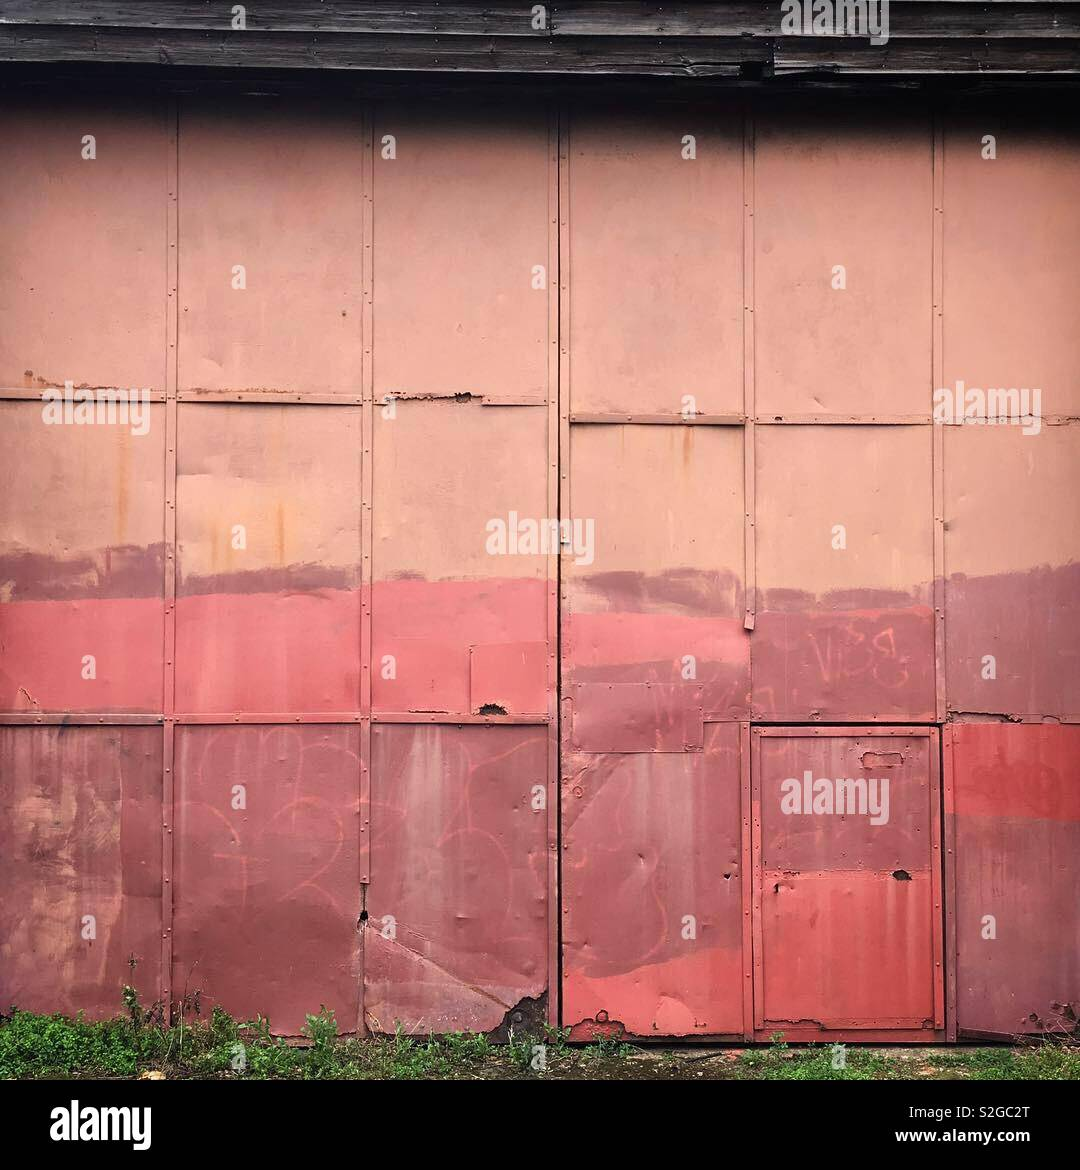 Old and worn steel clad workshop doors - Stock Image